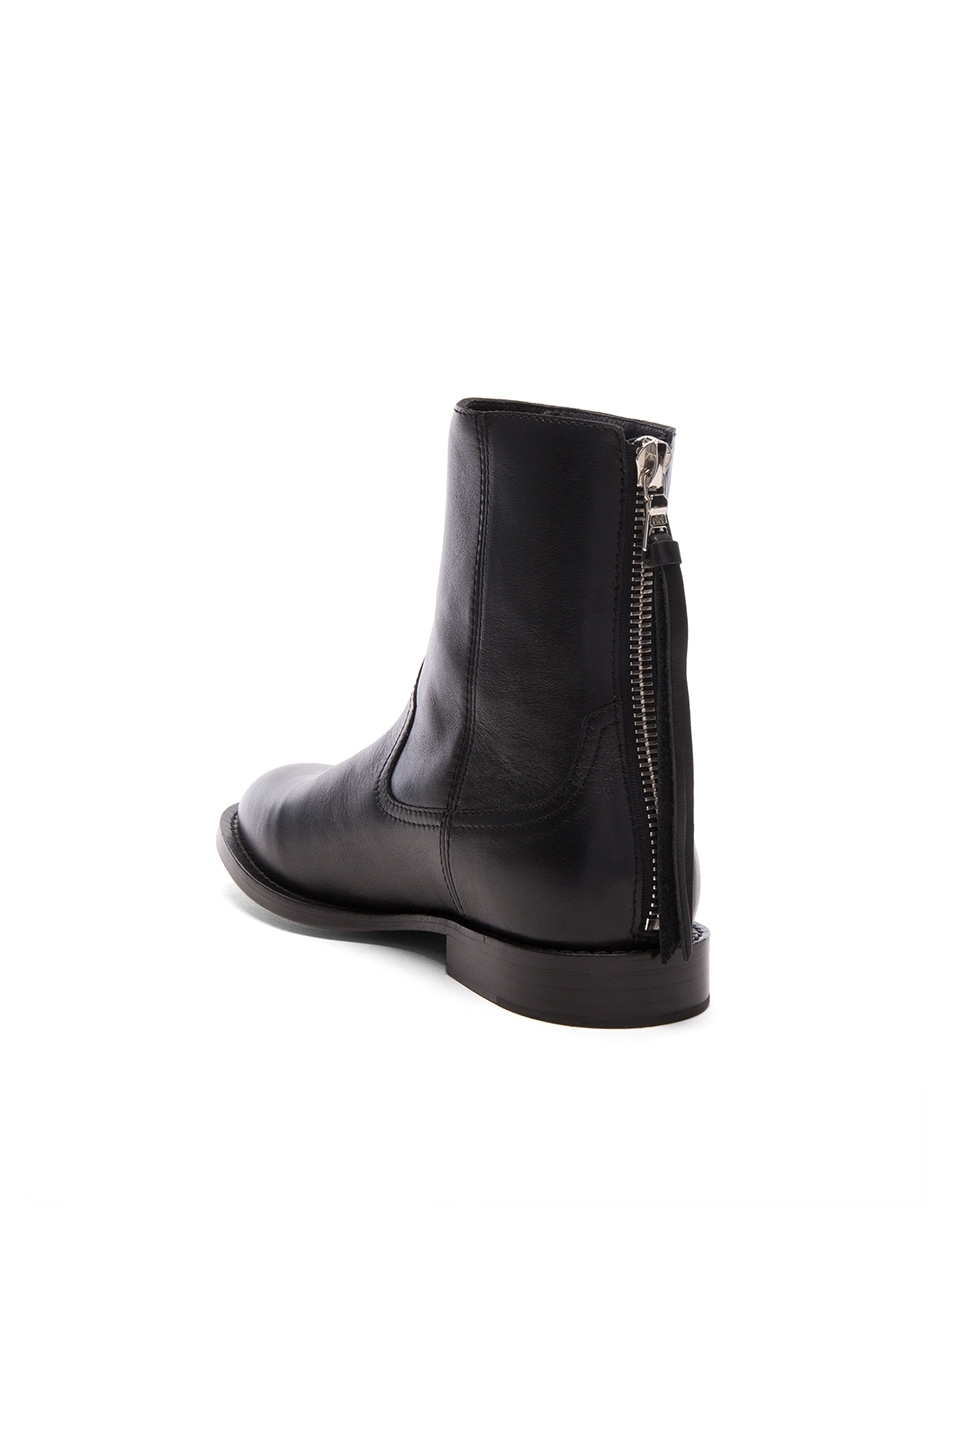 Image 3 of Amiri Leather Shane Boots in Black Leather